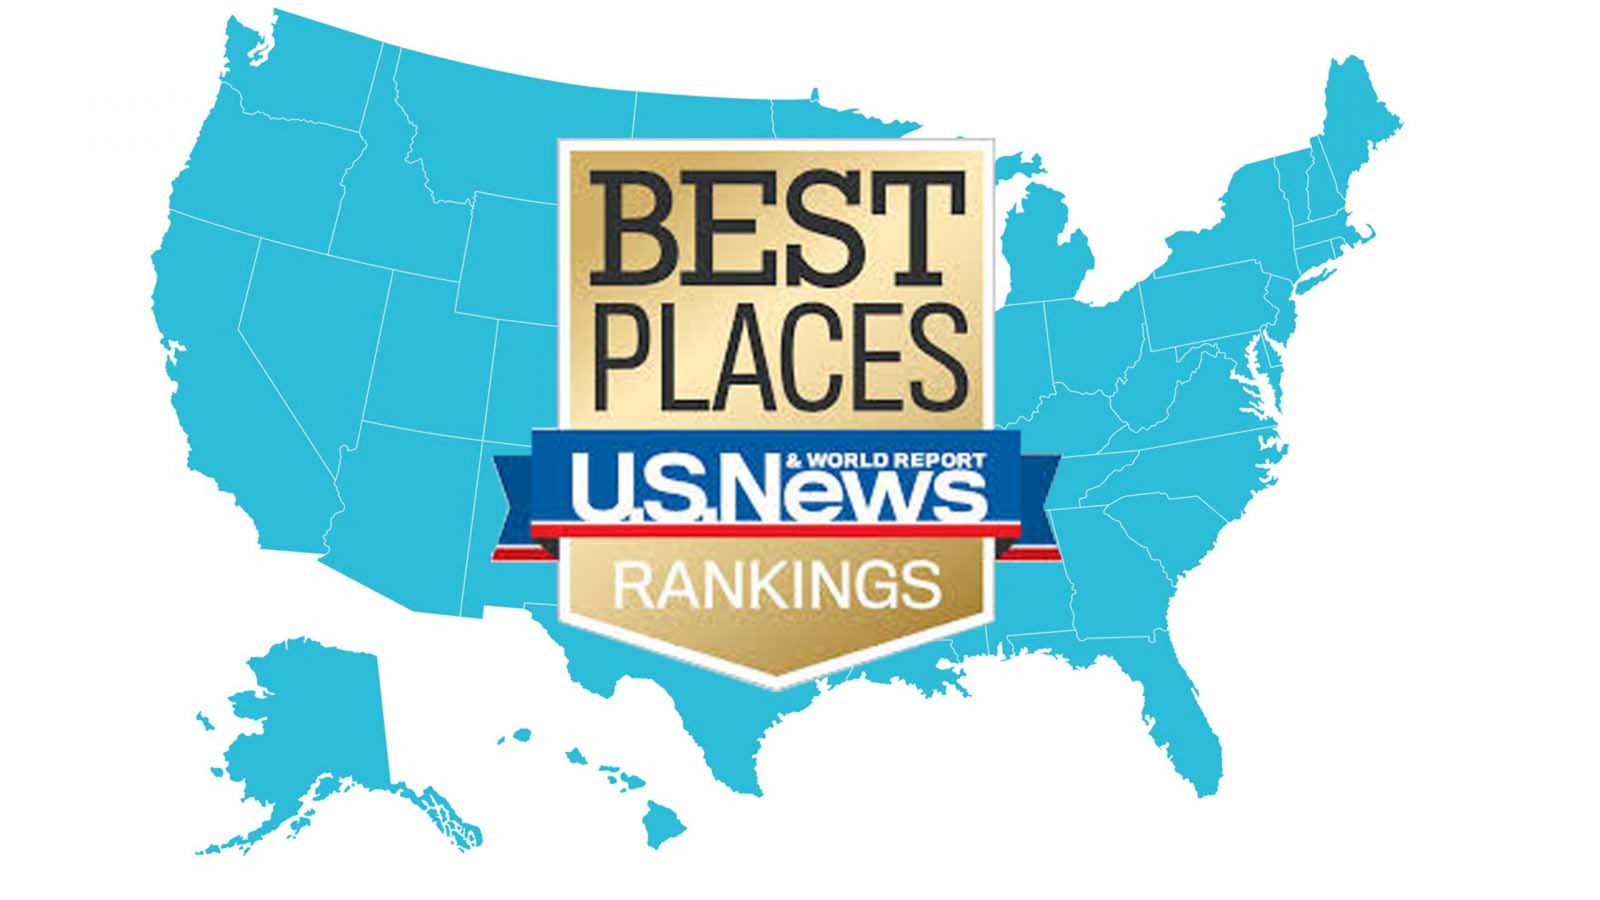 ISE Ranked 12th in US News and World Report's Best Industrial Engineering Departments